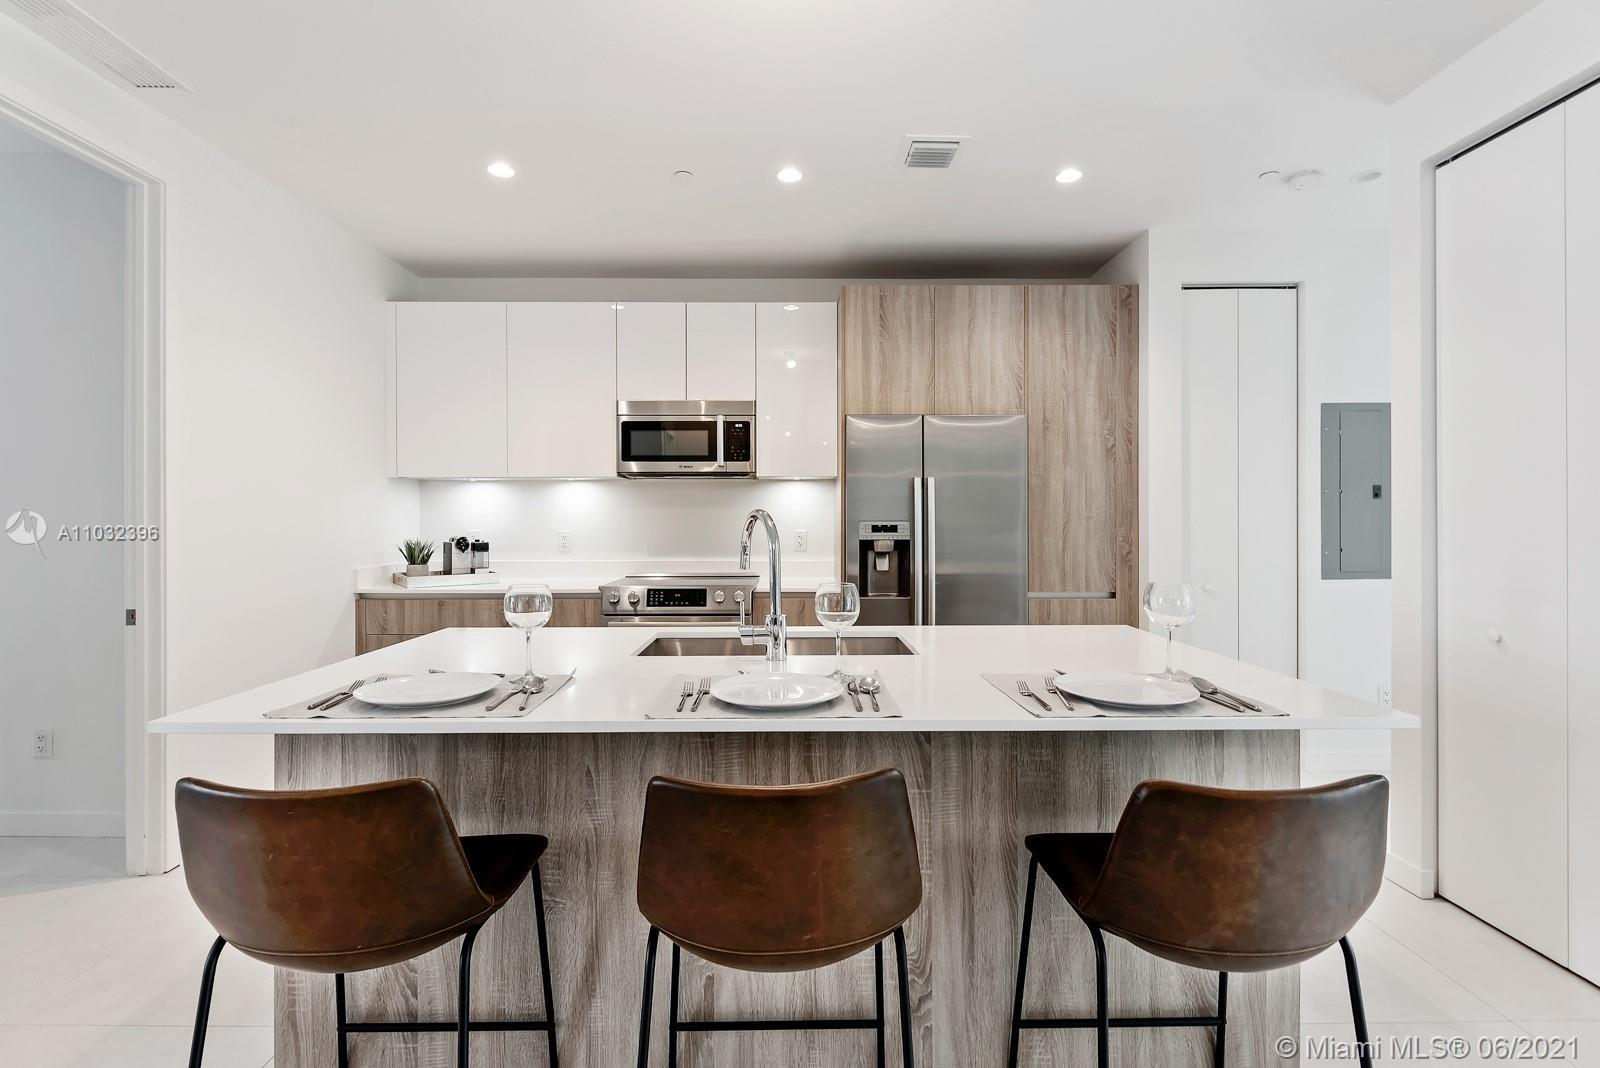 New Price!!! LAST UNIT AVAILABLE: UNIQUE OPPORTUNITY TO OWN A CONDO WITH PRIVATE ENTRANCE FROM THE S